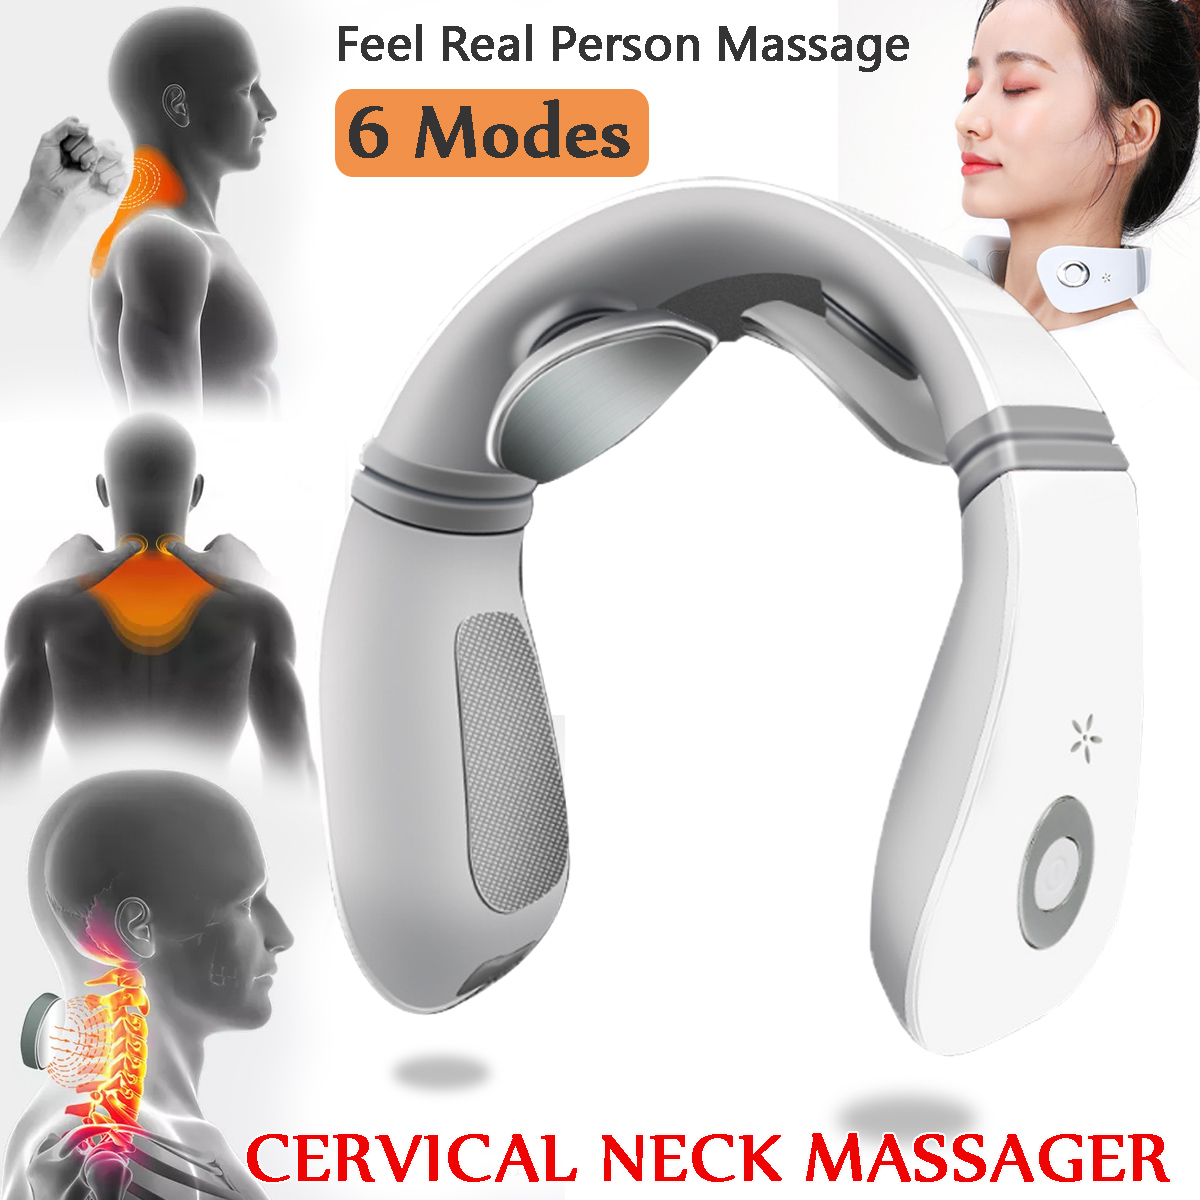 USB Electric Cervical Neck Massager 6 Modes Pulse